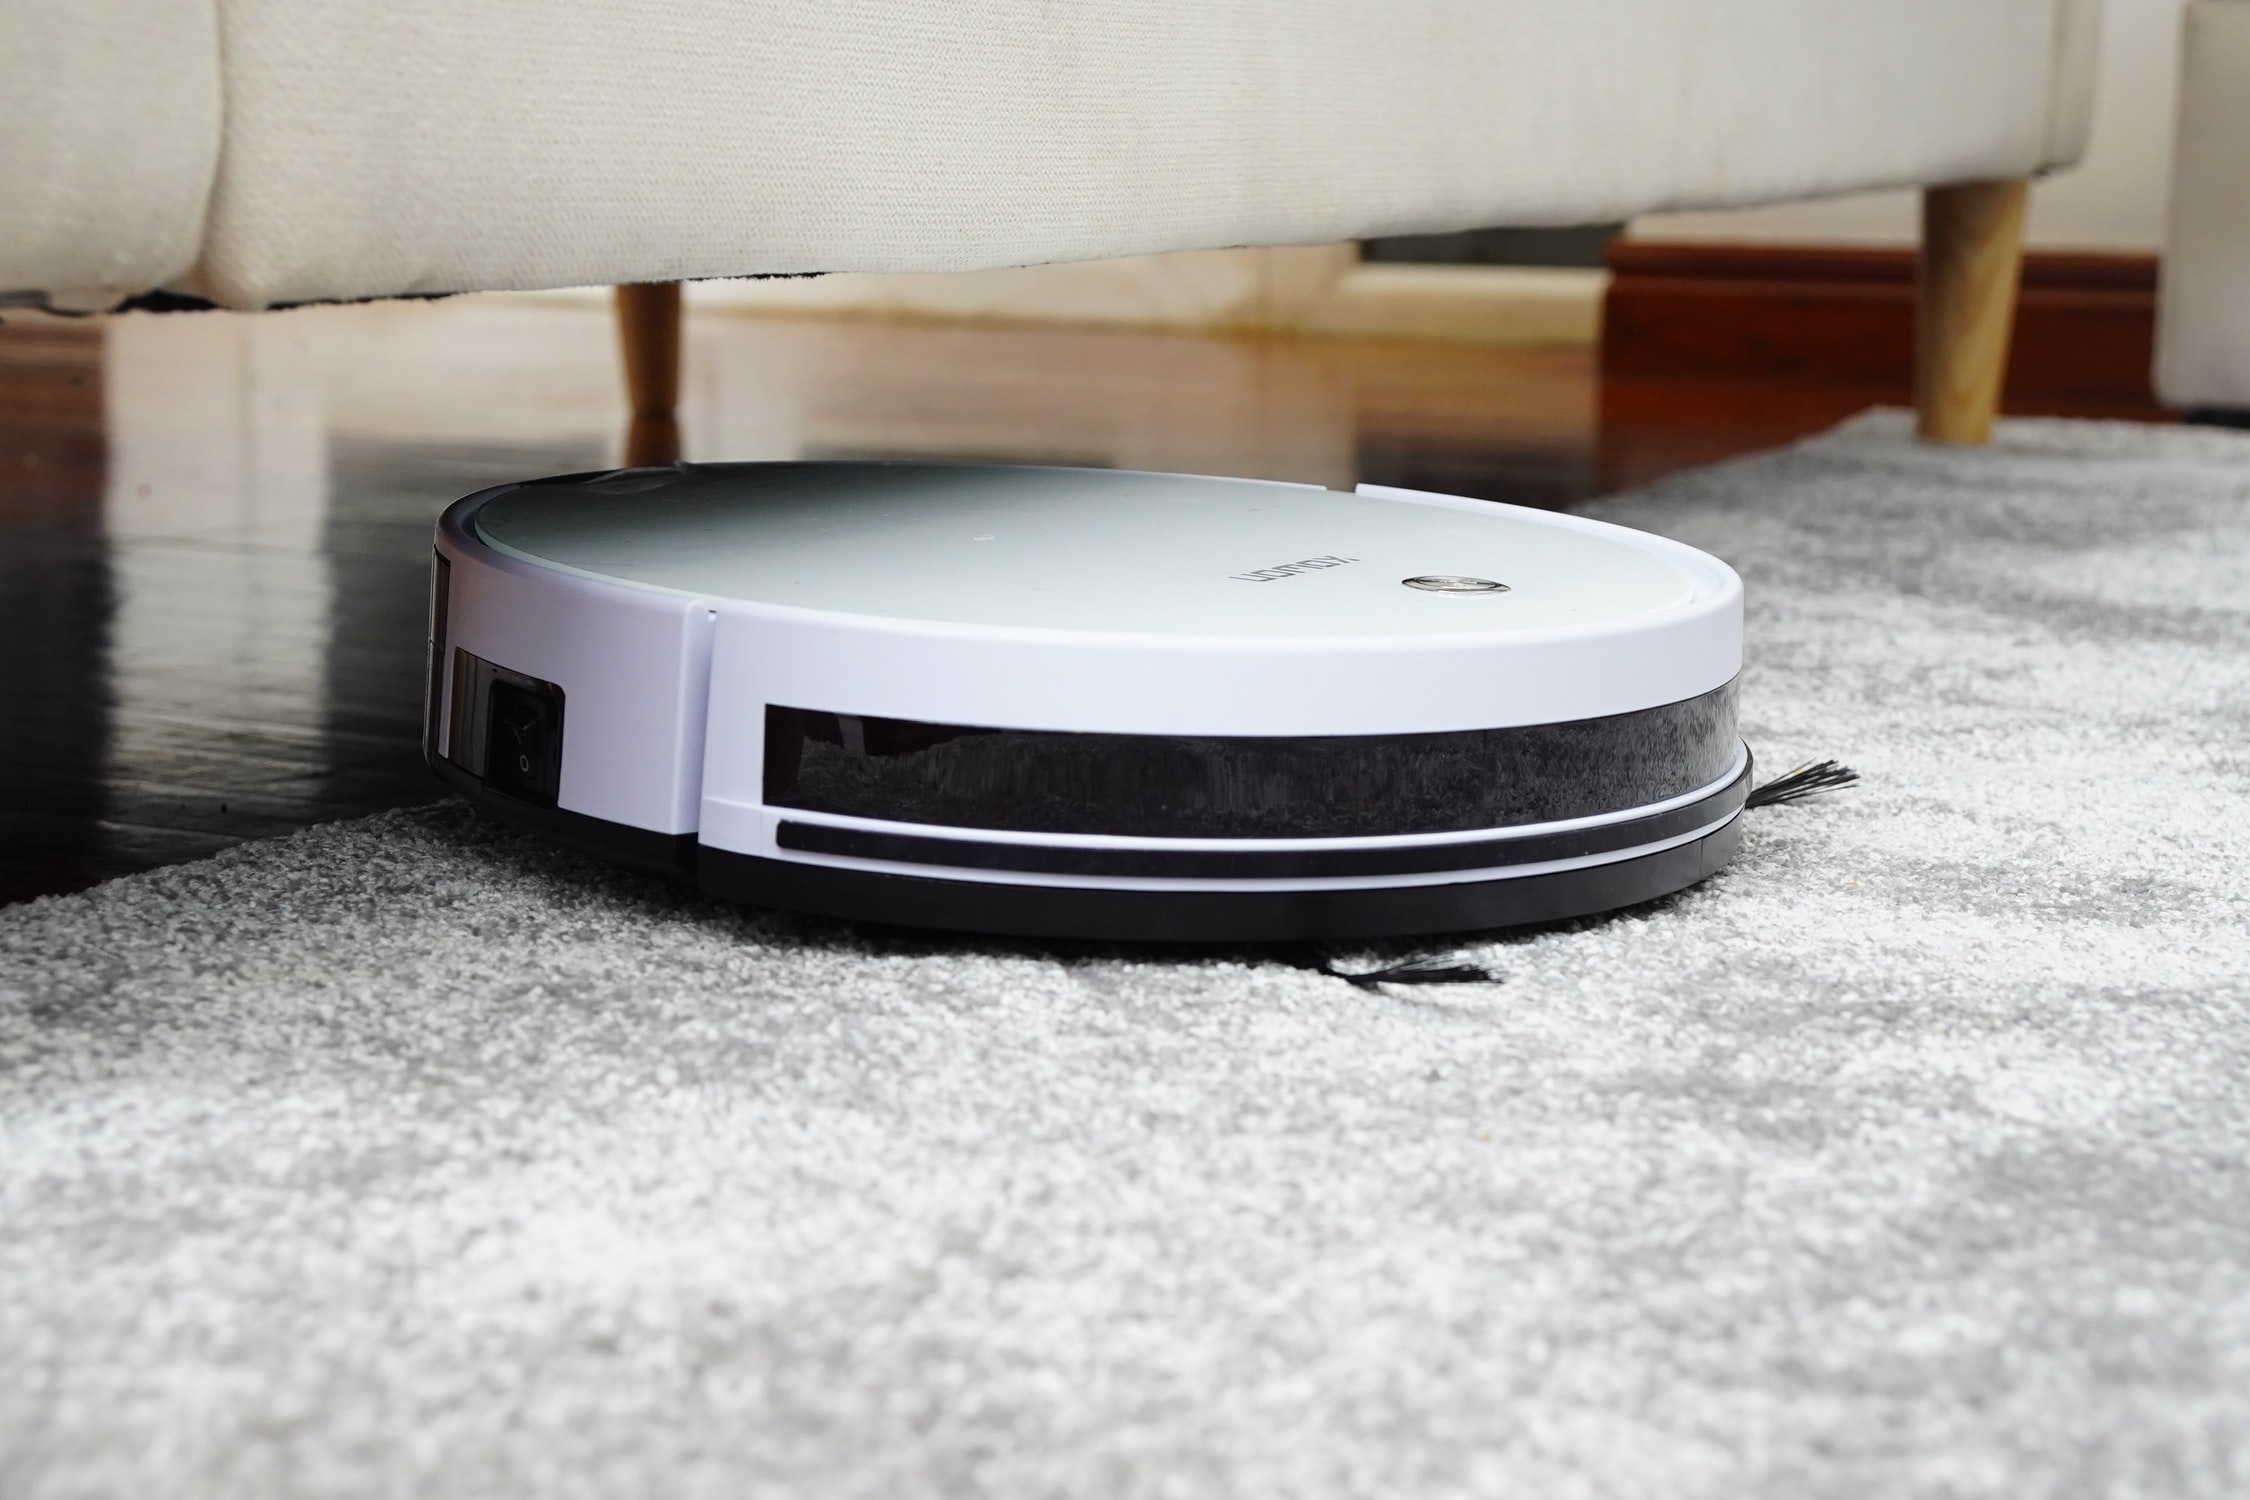 5 Best Robot Vacuums For Thick And High Pile Carpet